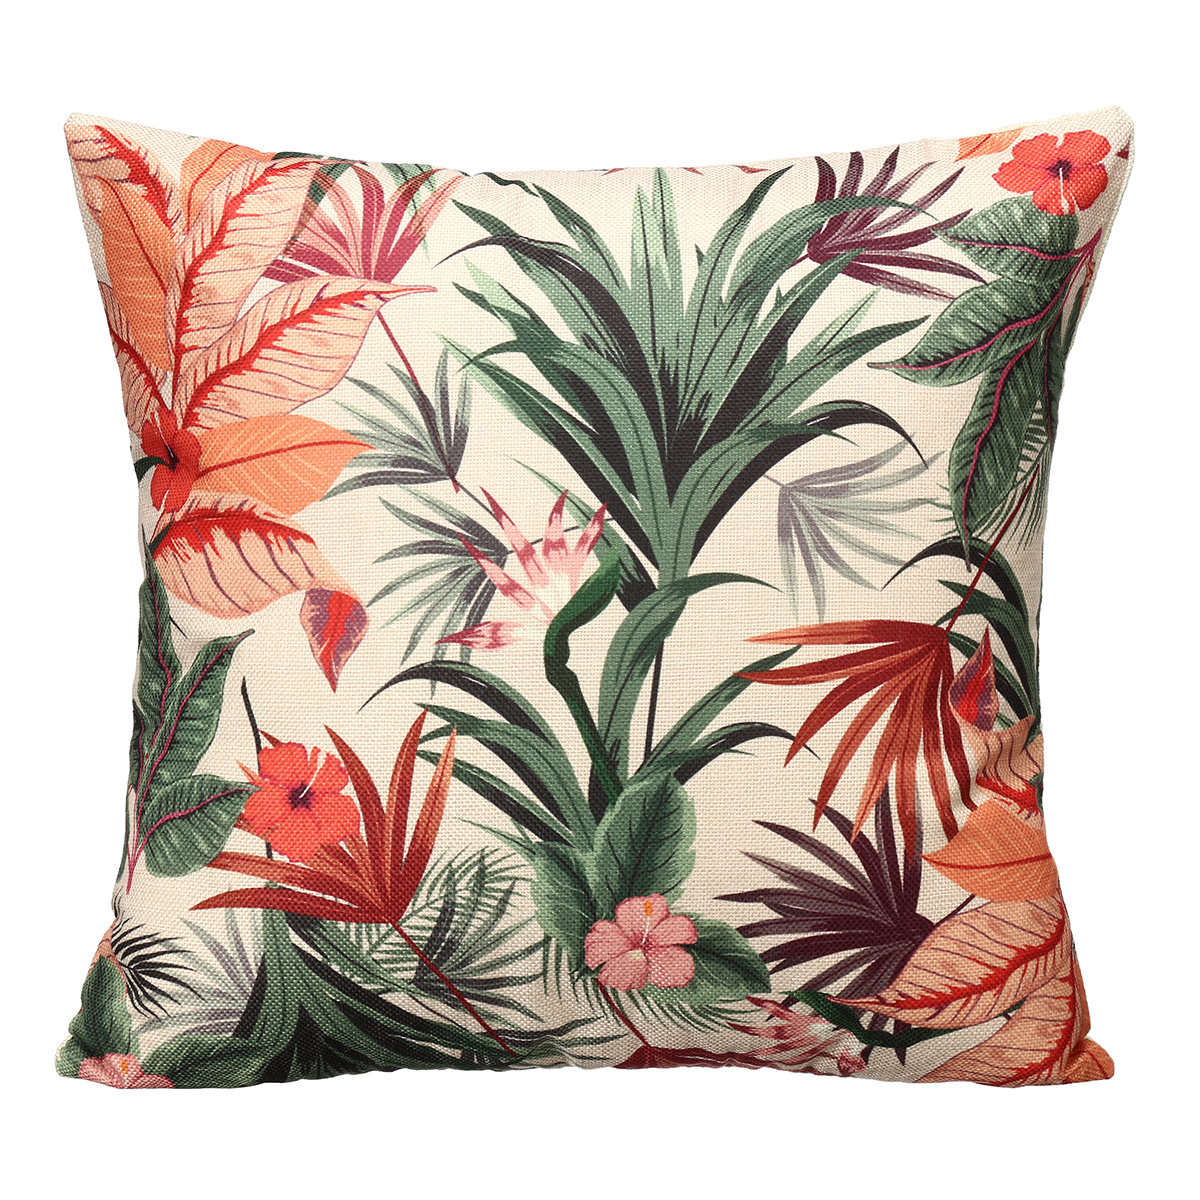 Decorative Pillows & Custom Pillow Covers for Home | Walmart Canada